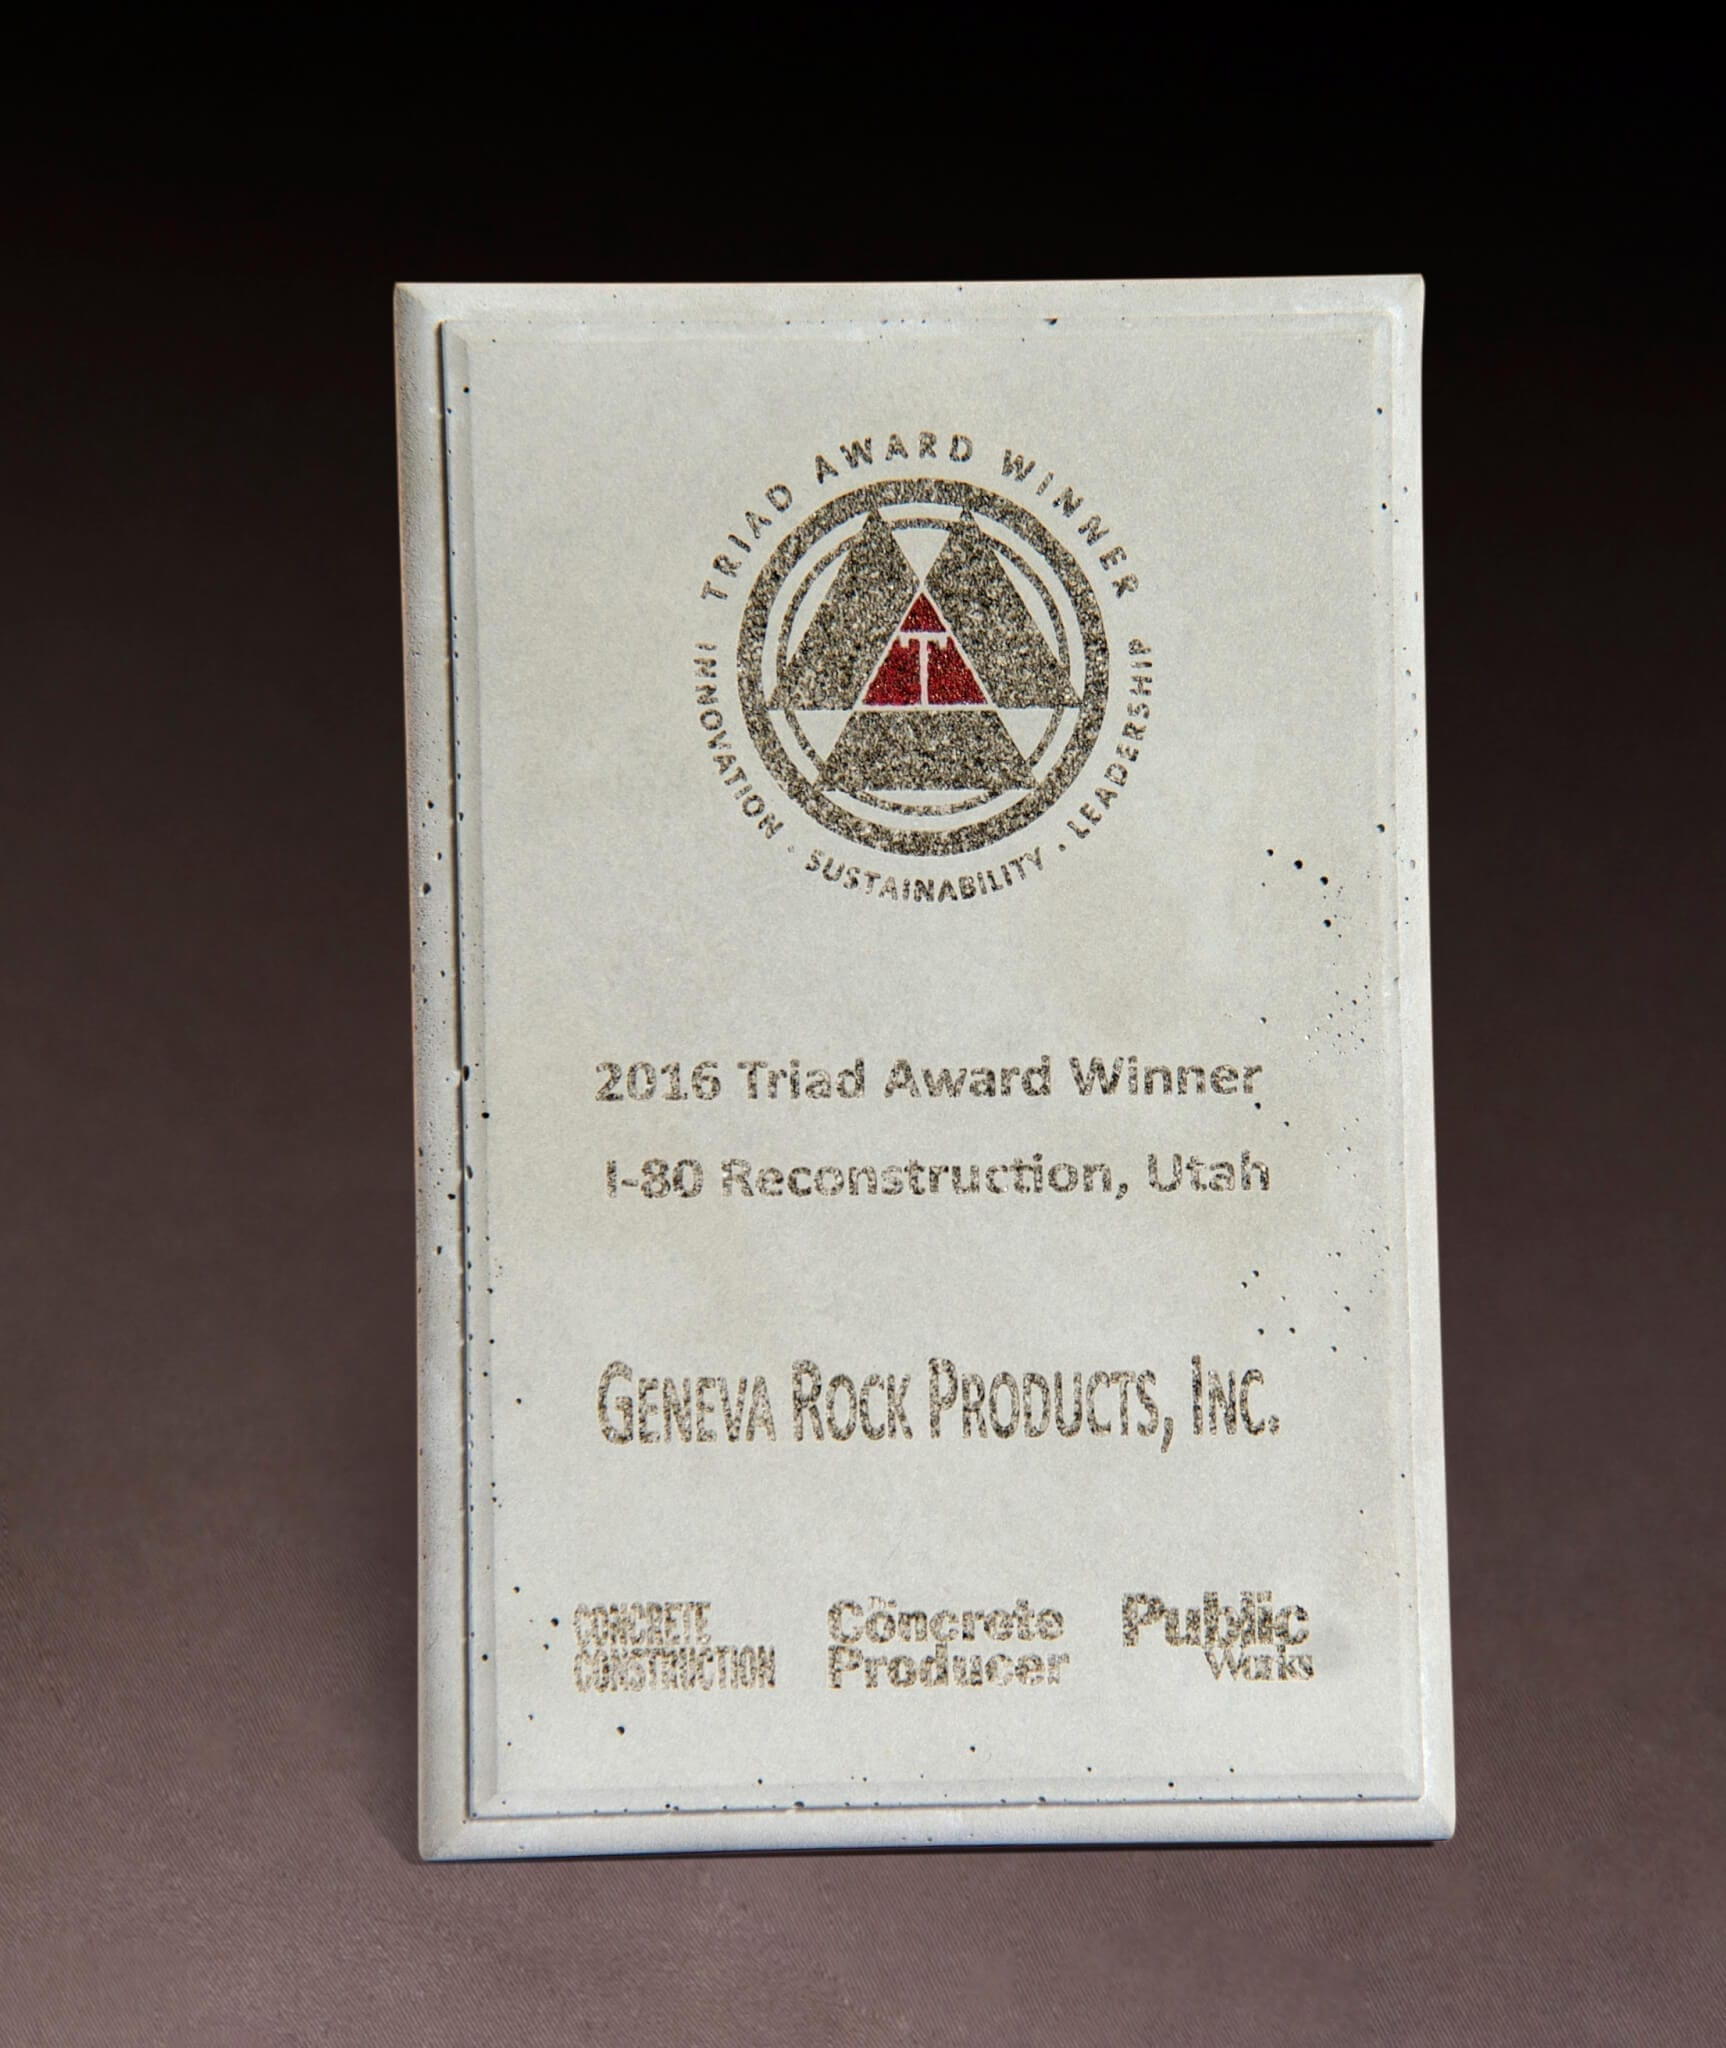 2016 Triad Award Winner